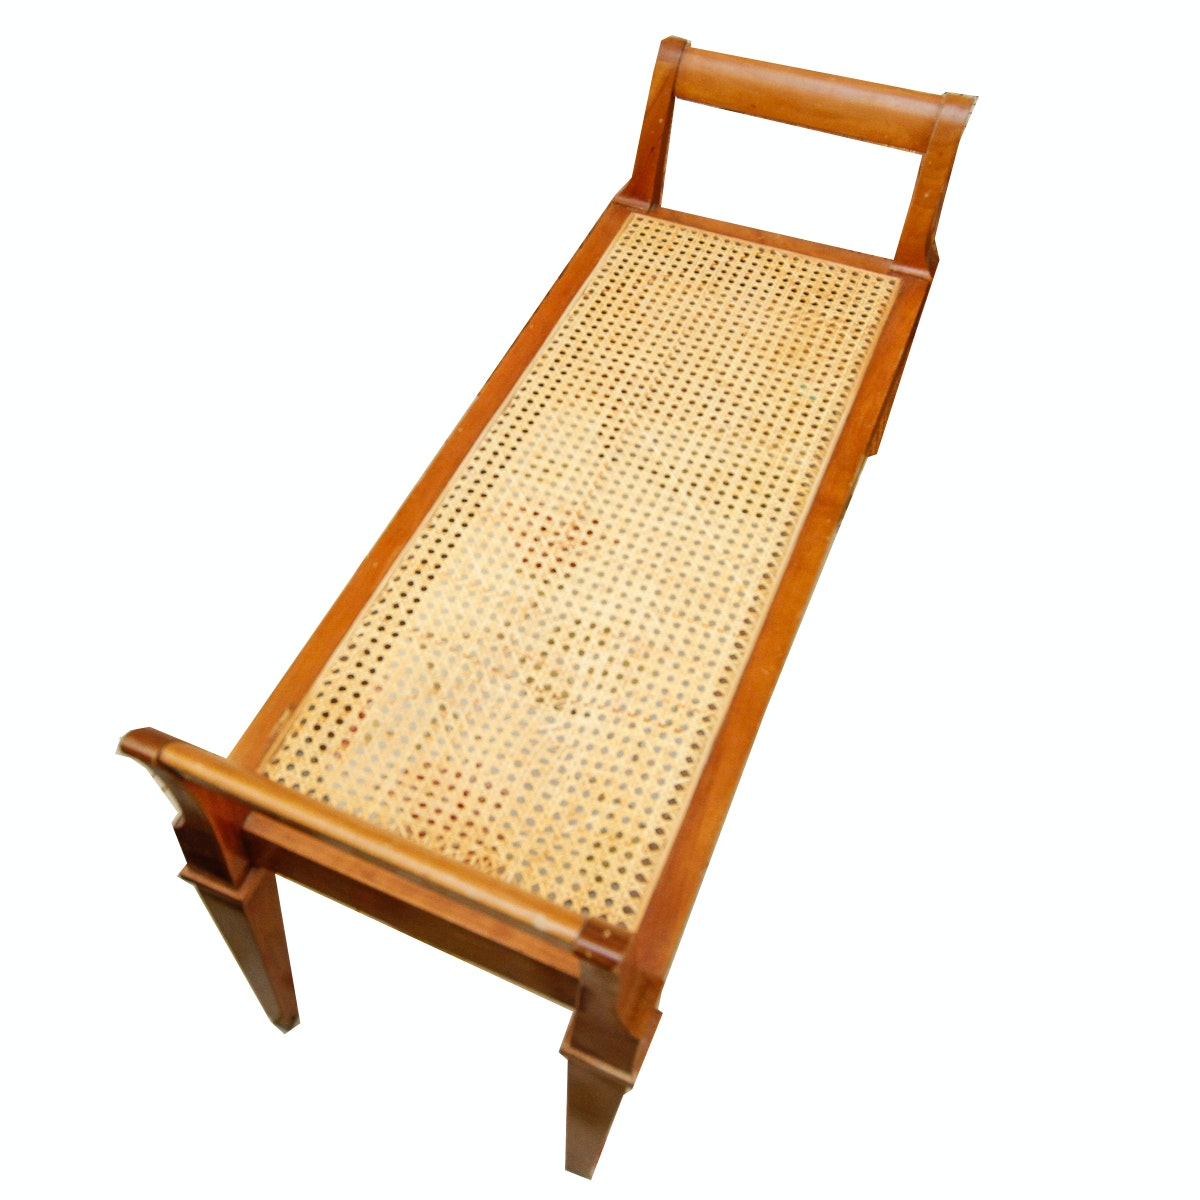 Backless Wooden Bench with Cane Seat